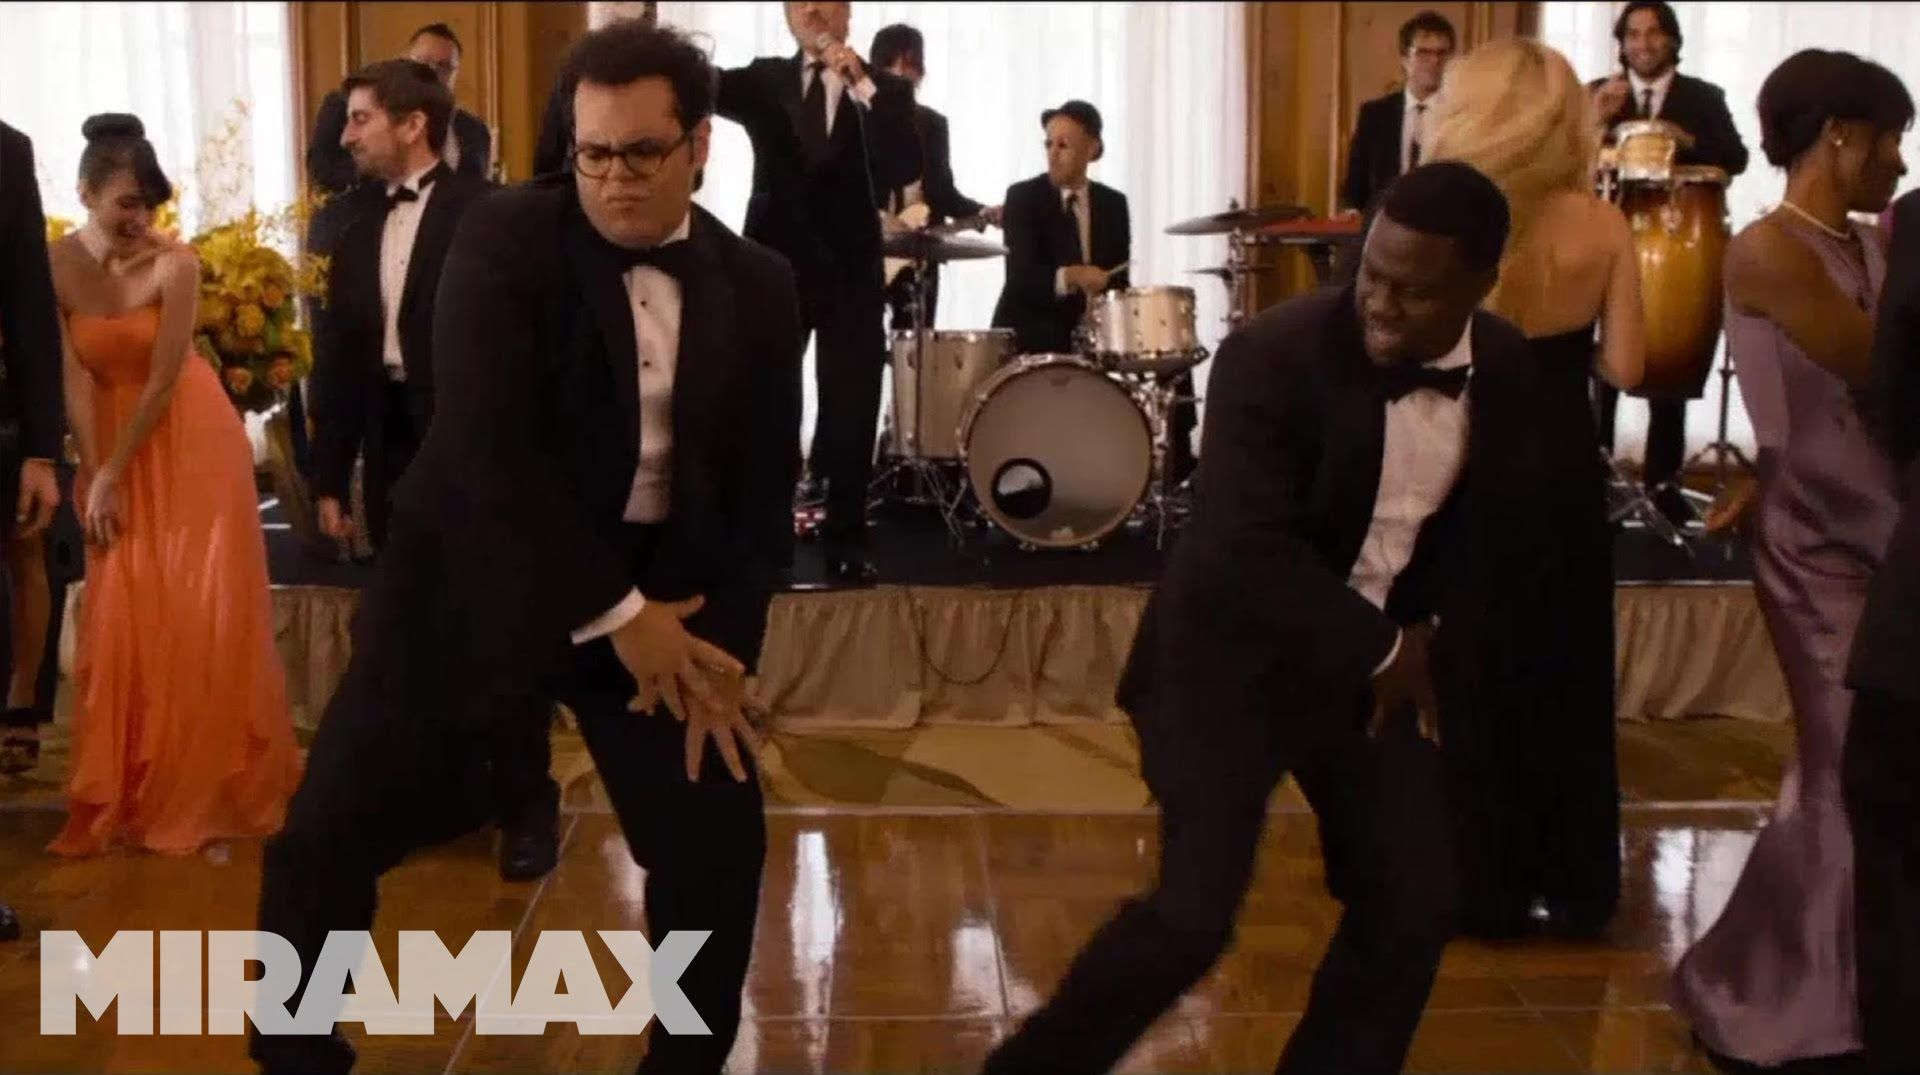 Mmx On Youtube The Wedding Ringer Wedding Dance Hd Subscribe Now To The Miramax Channel On Youtube Com The Wedding Ringer Wedding Ringer Wedding Dance